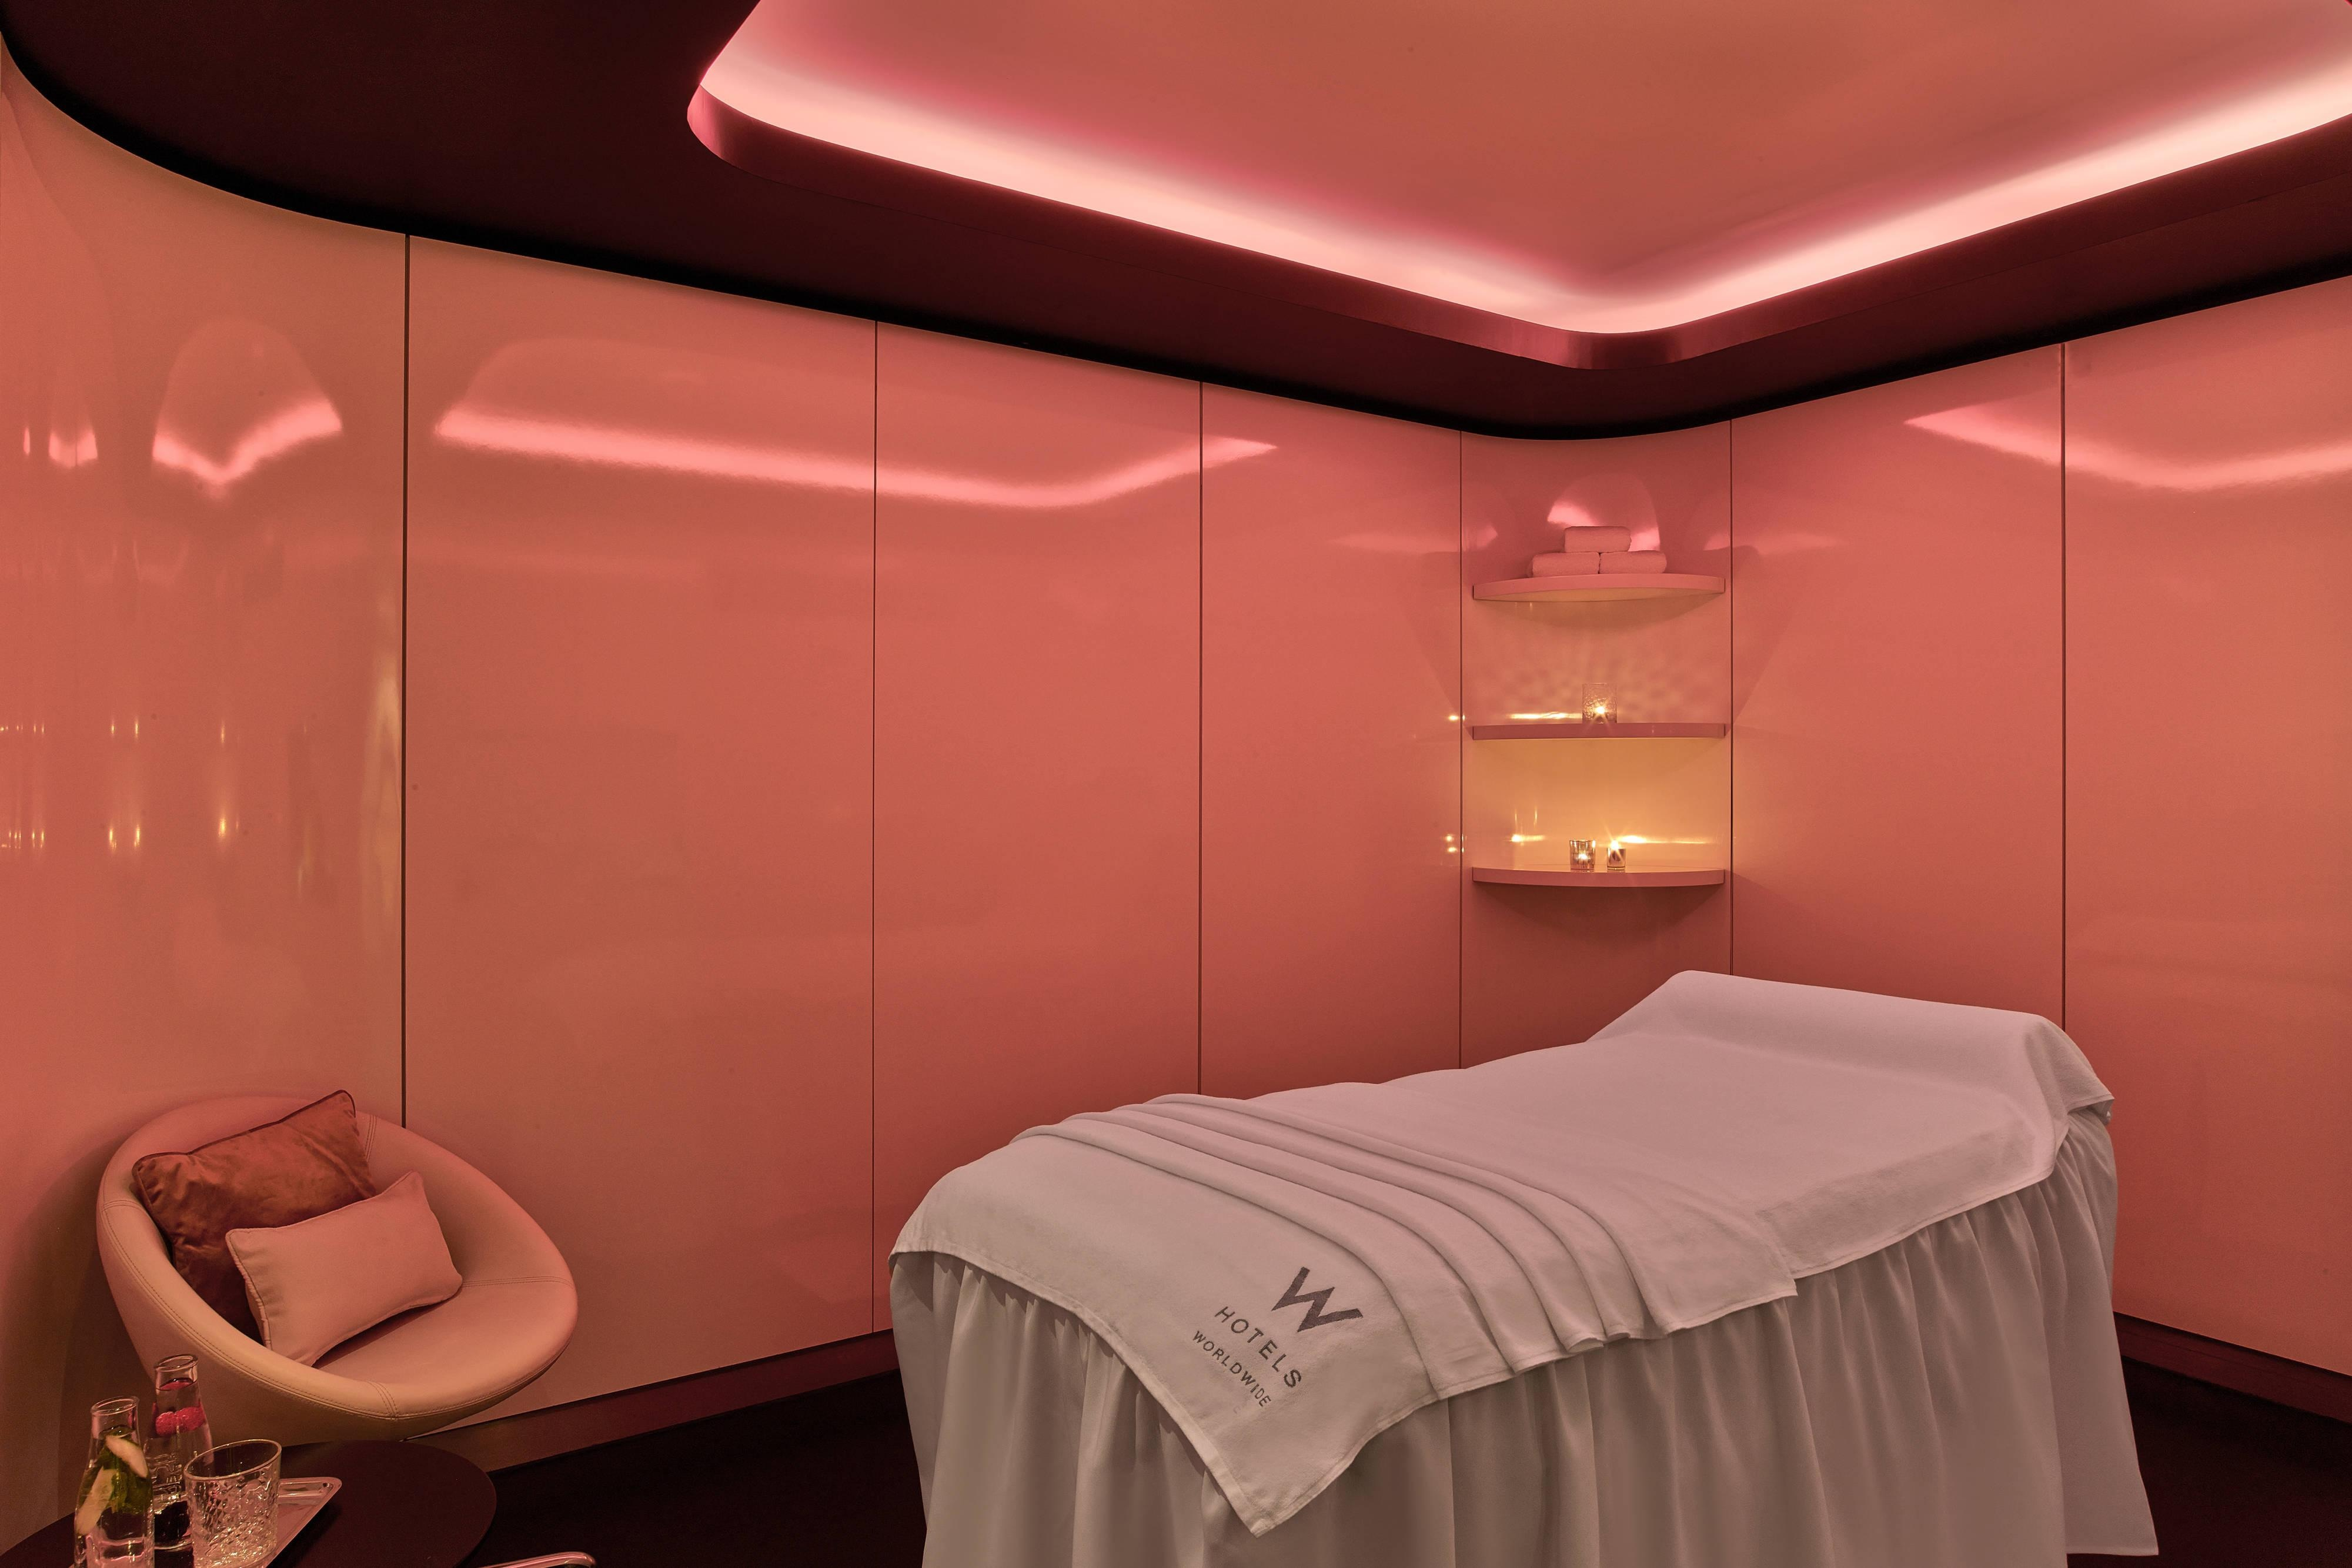 AwaySpa treatment Room